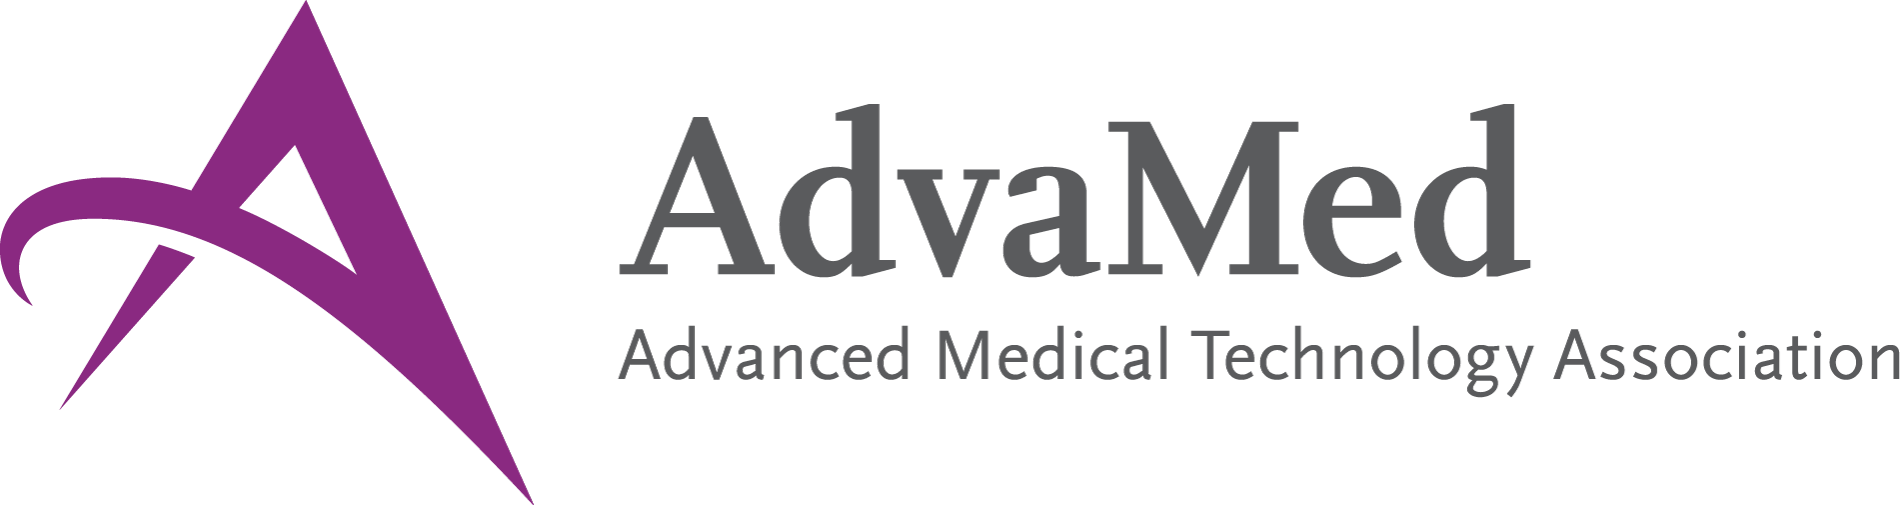 AdvaMed_full-logo_color-PNG-1900x505.png